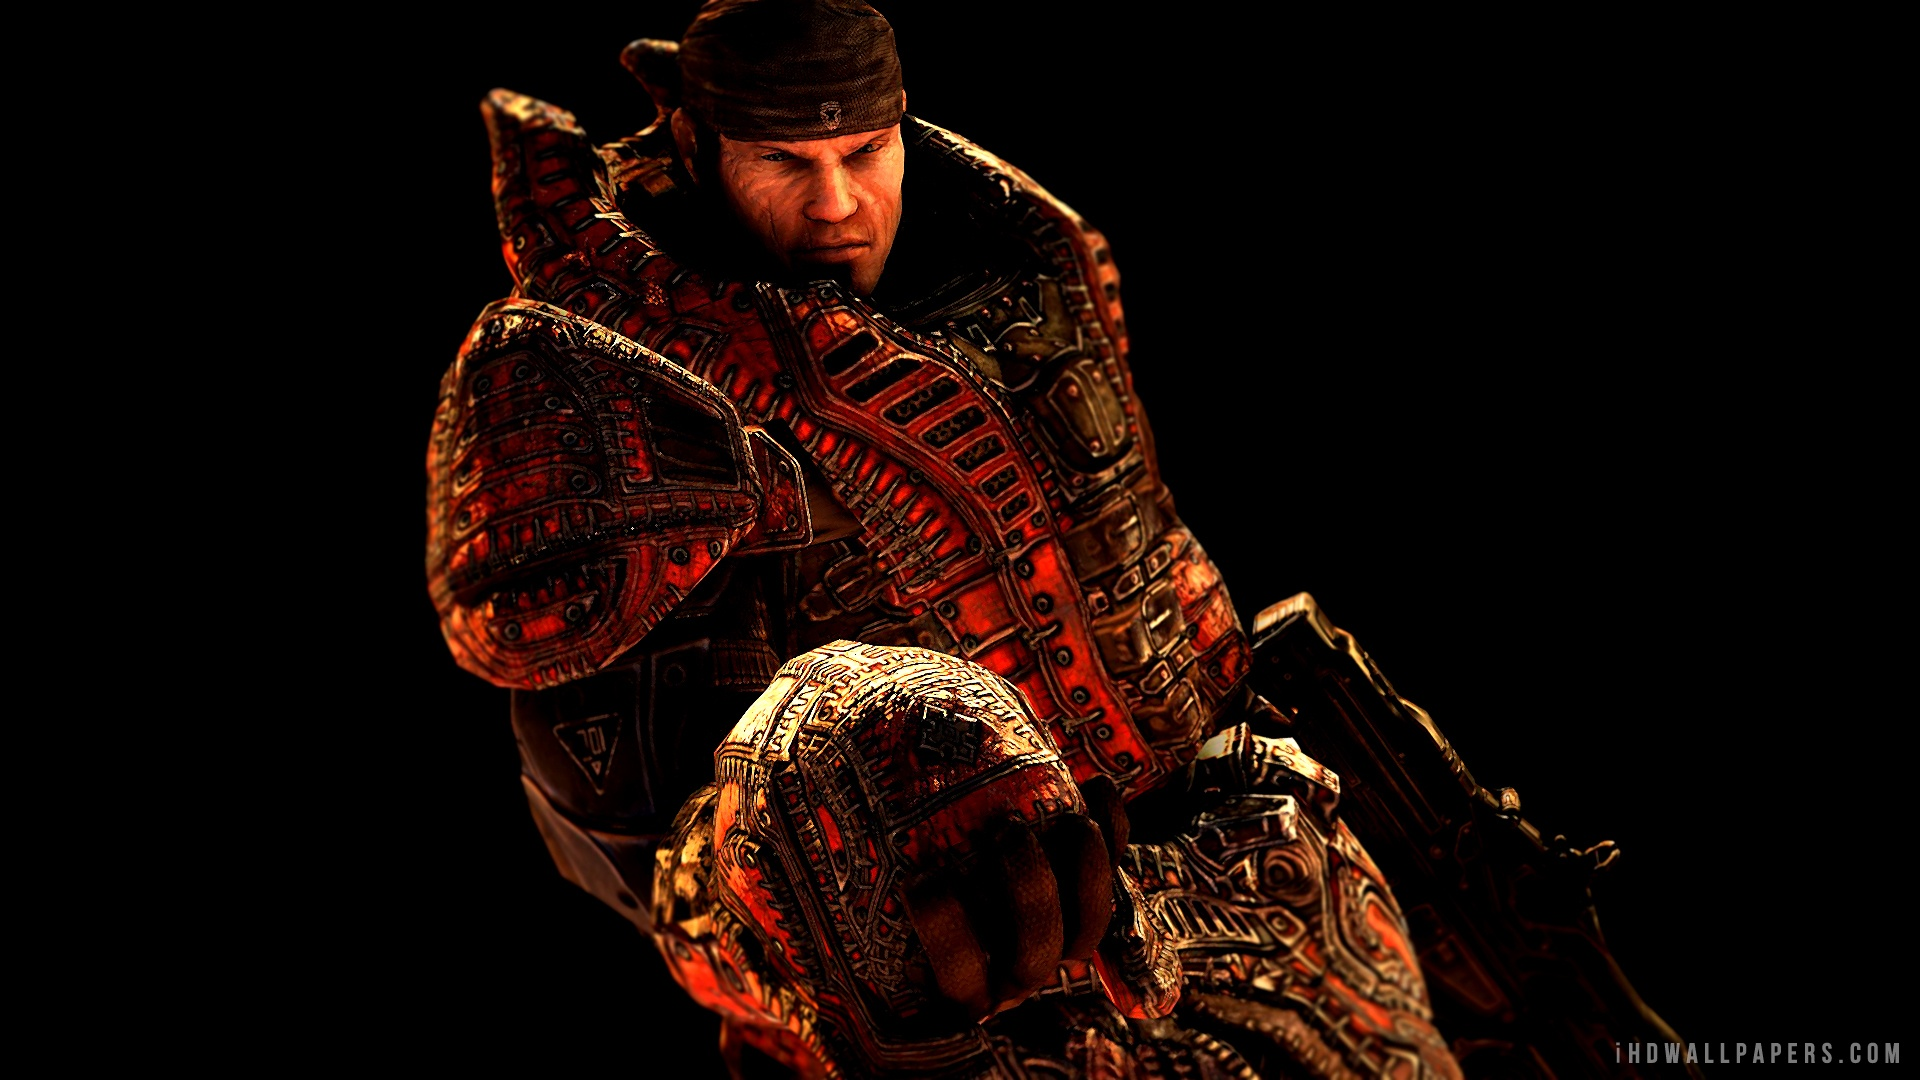 Free Download Marcus In Gears Of War Hd Wallpaper Ihd Wallpapers